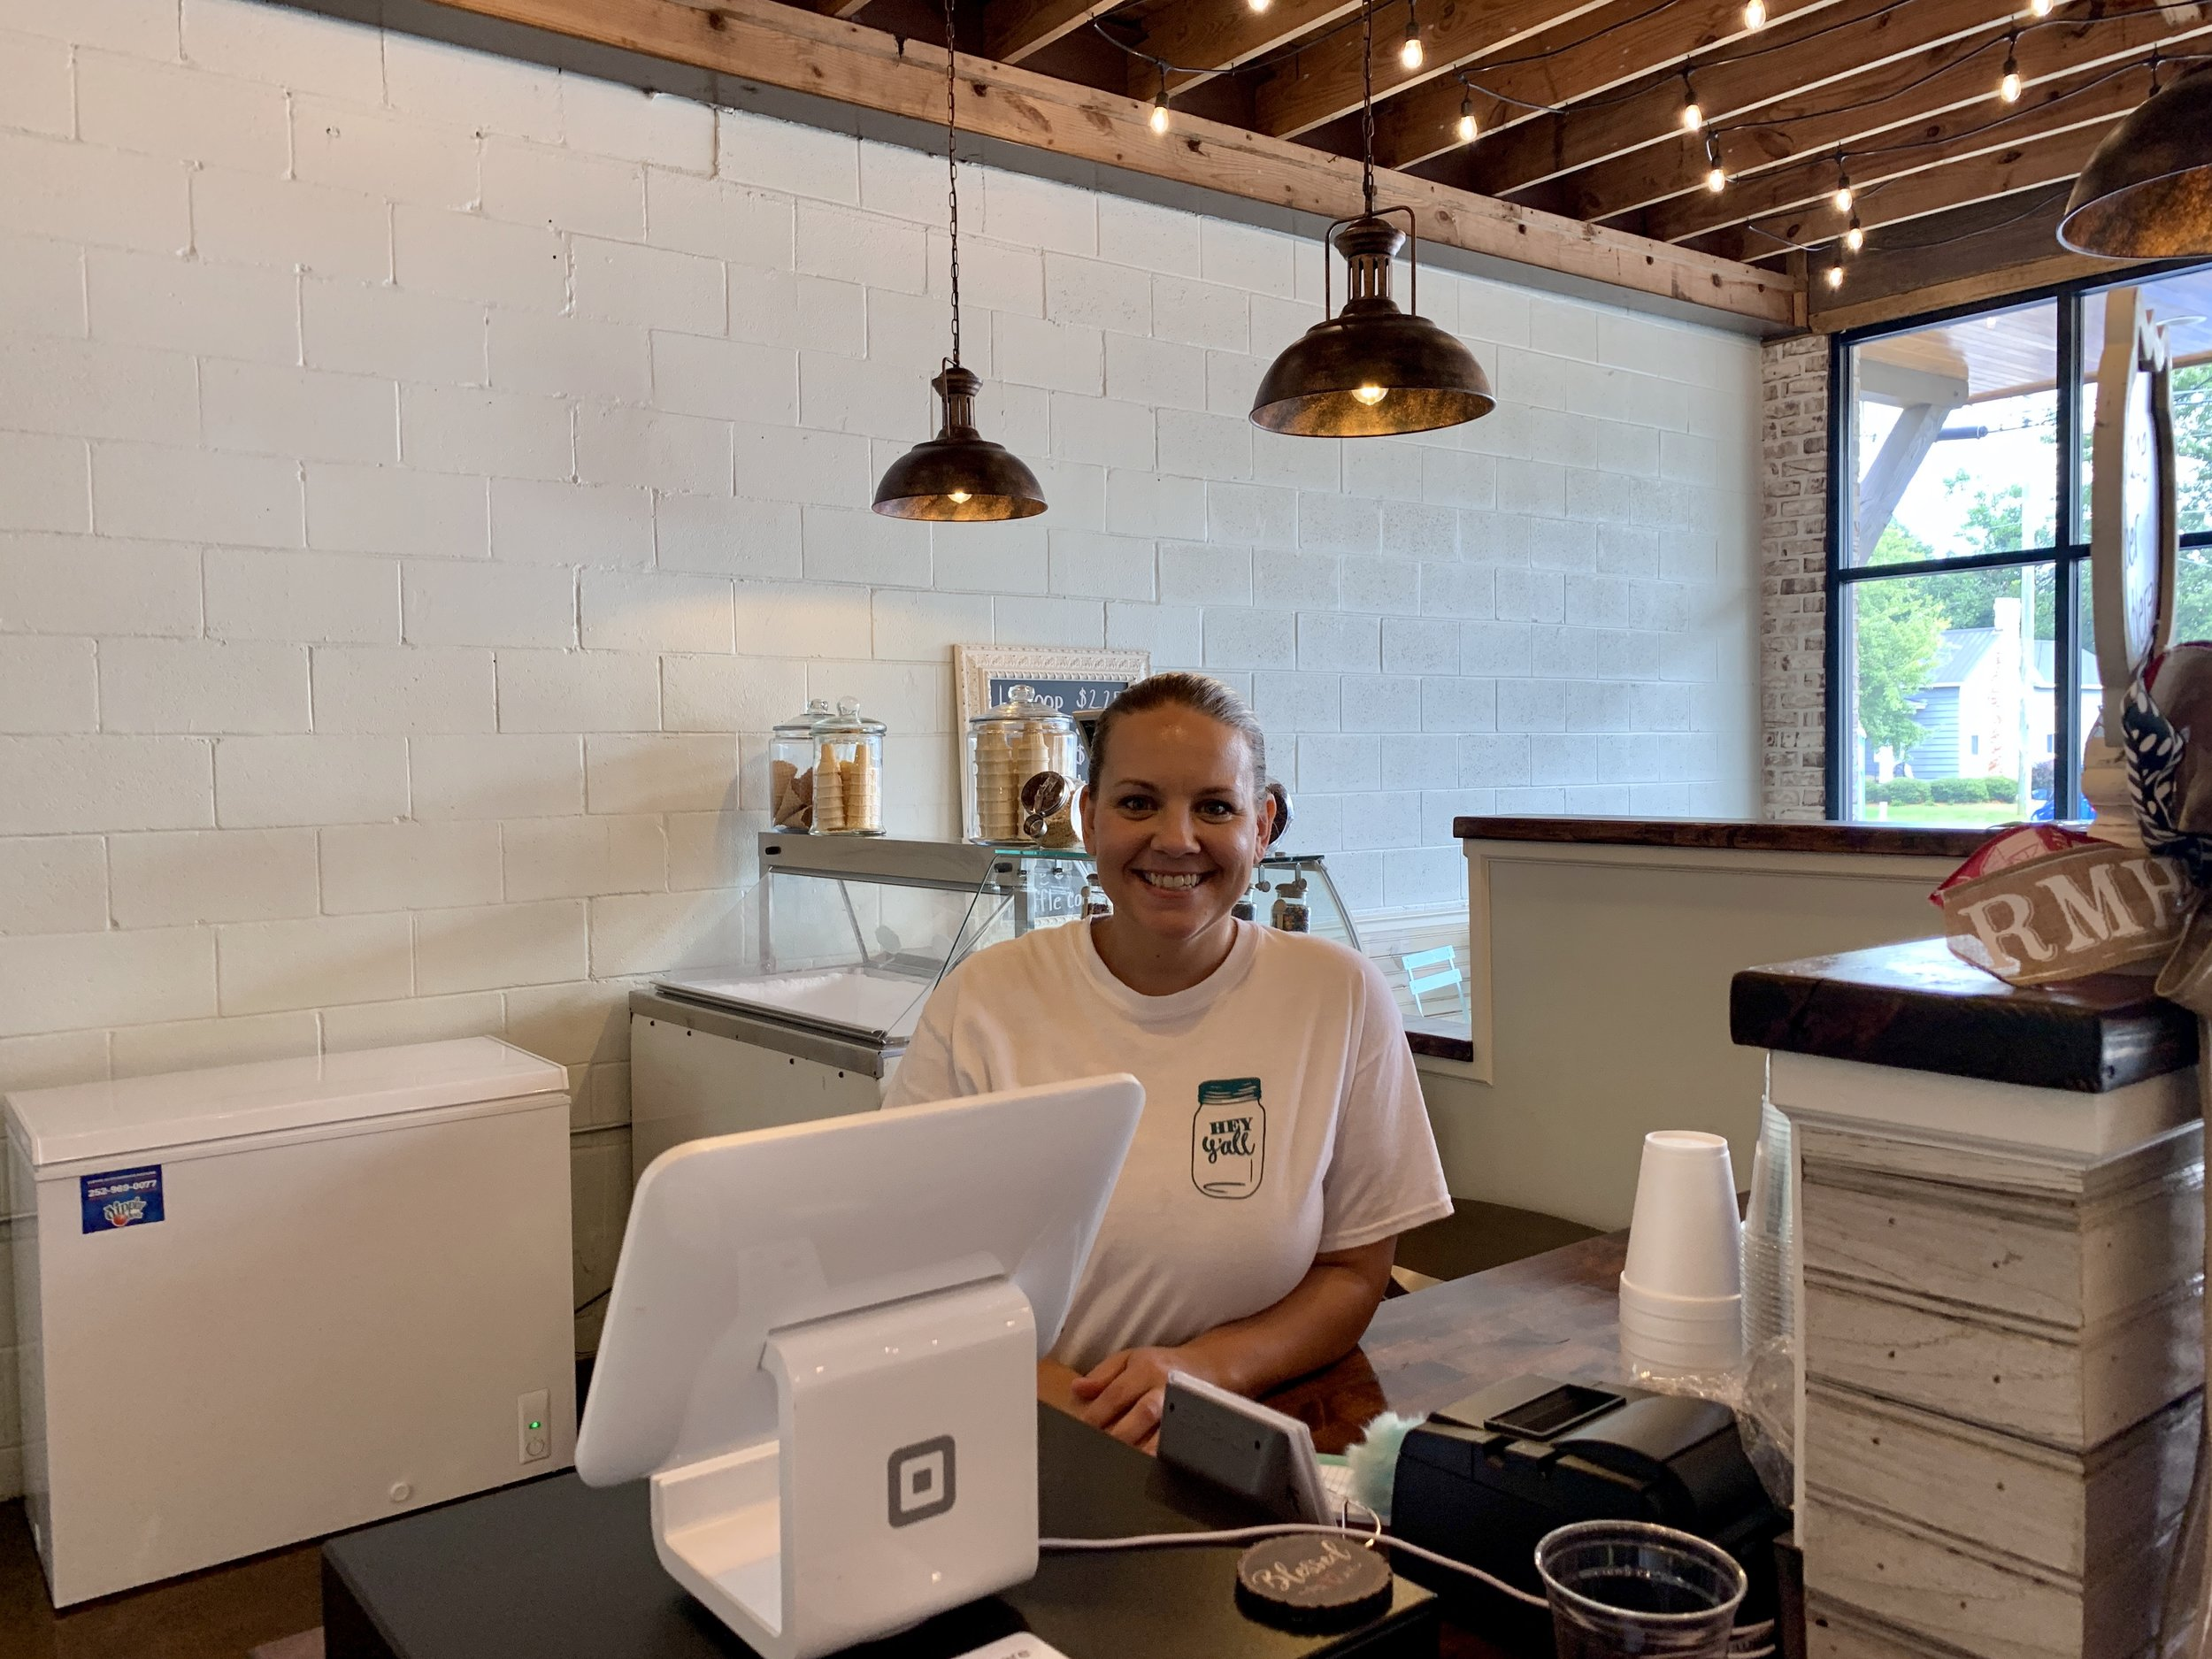 Ashley Smith stands behind the counter of her new restaurant in Deep Run. Photo by Catherine Hardee / Neuse News